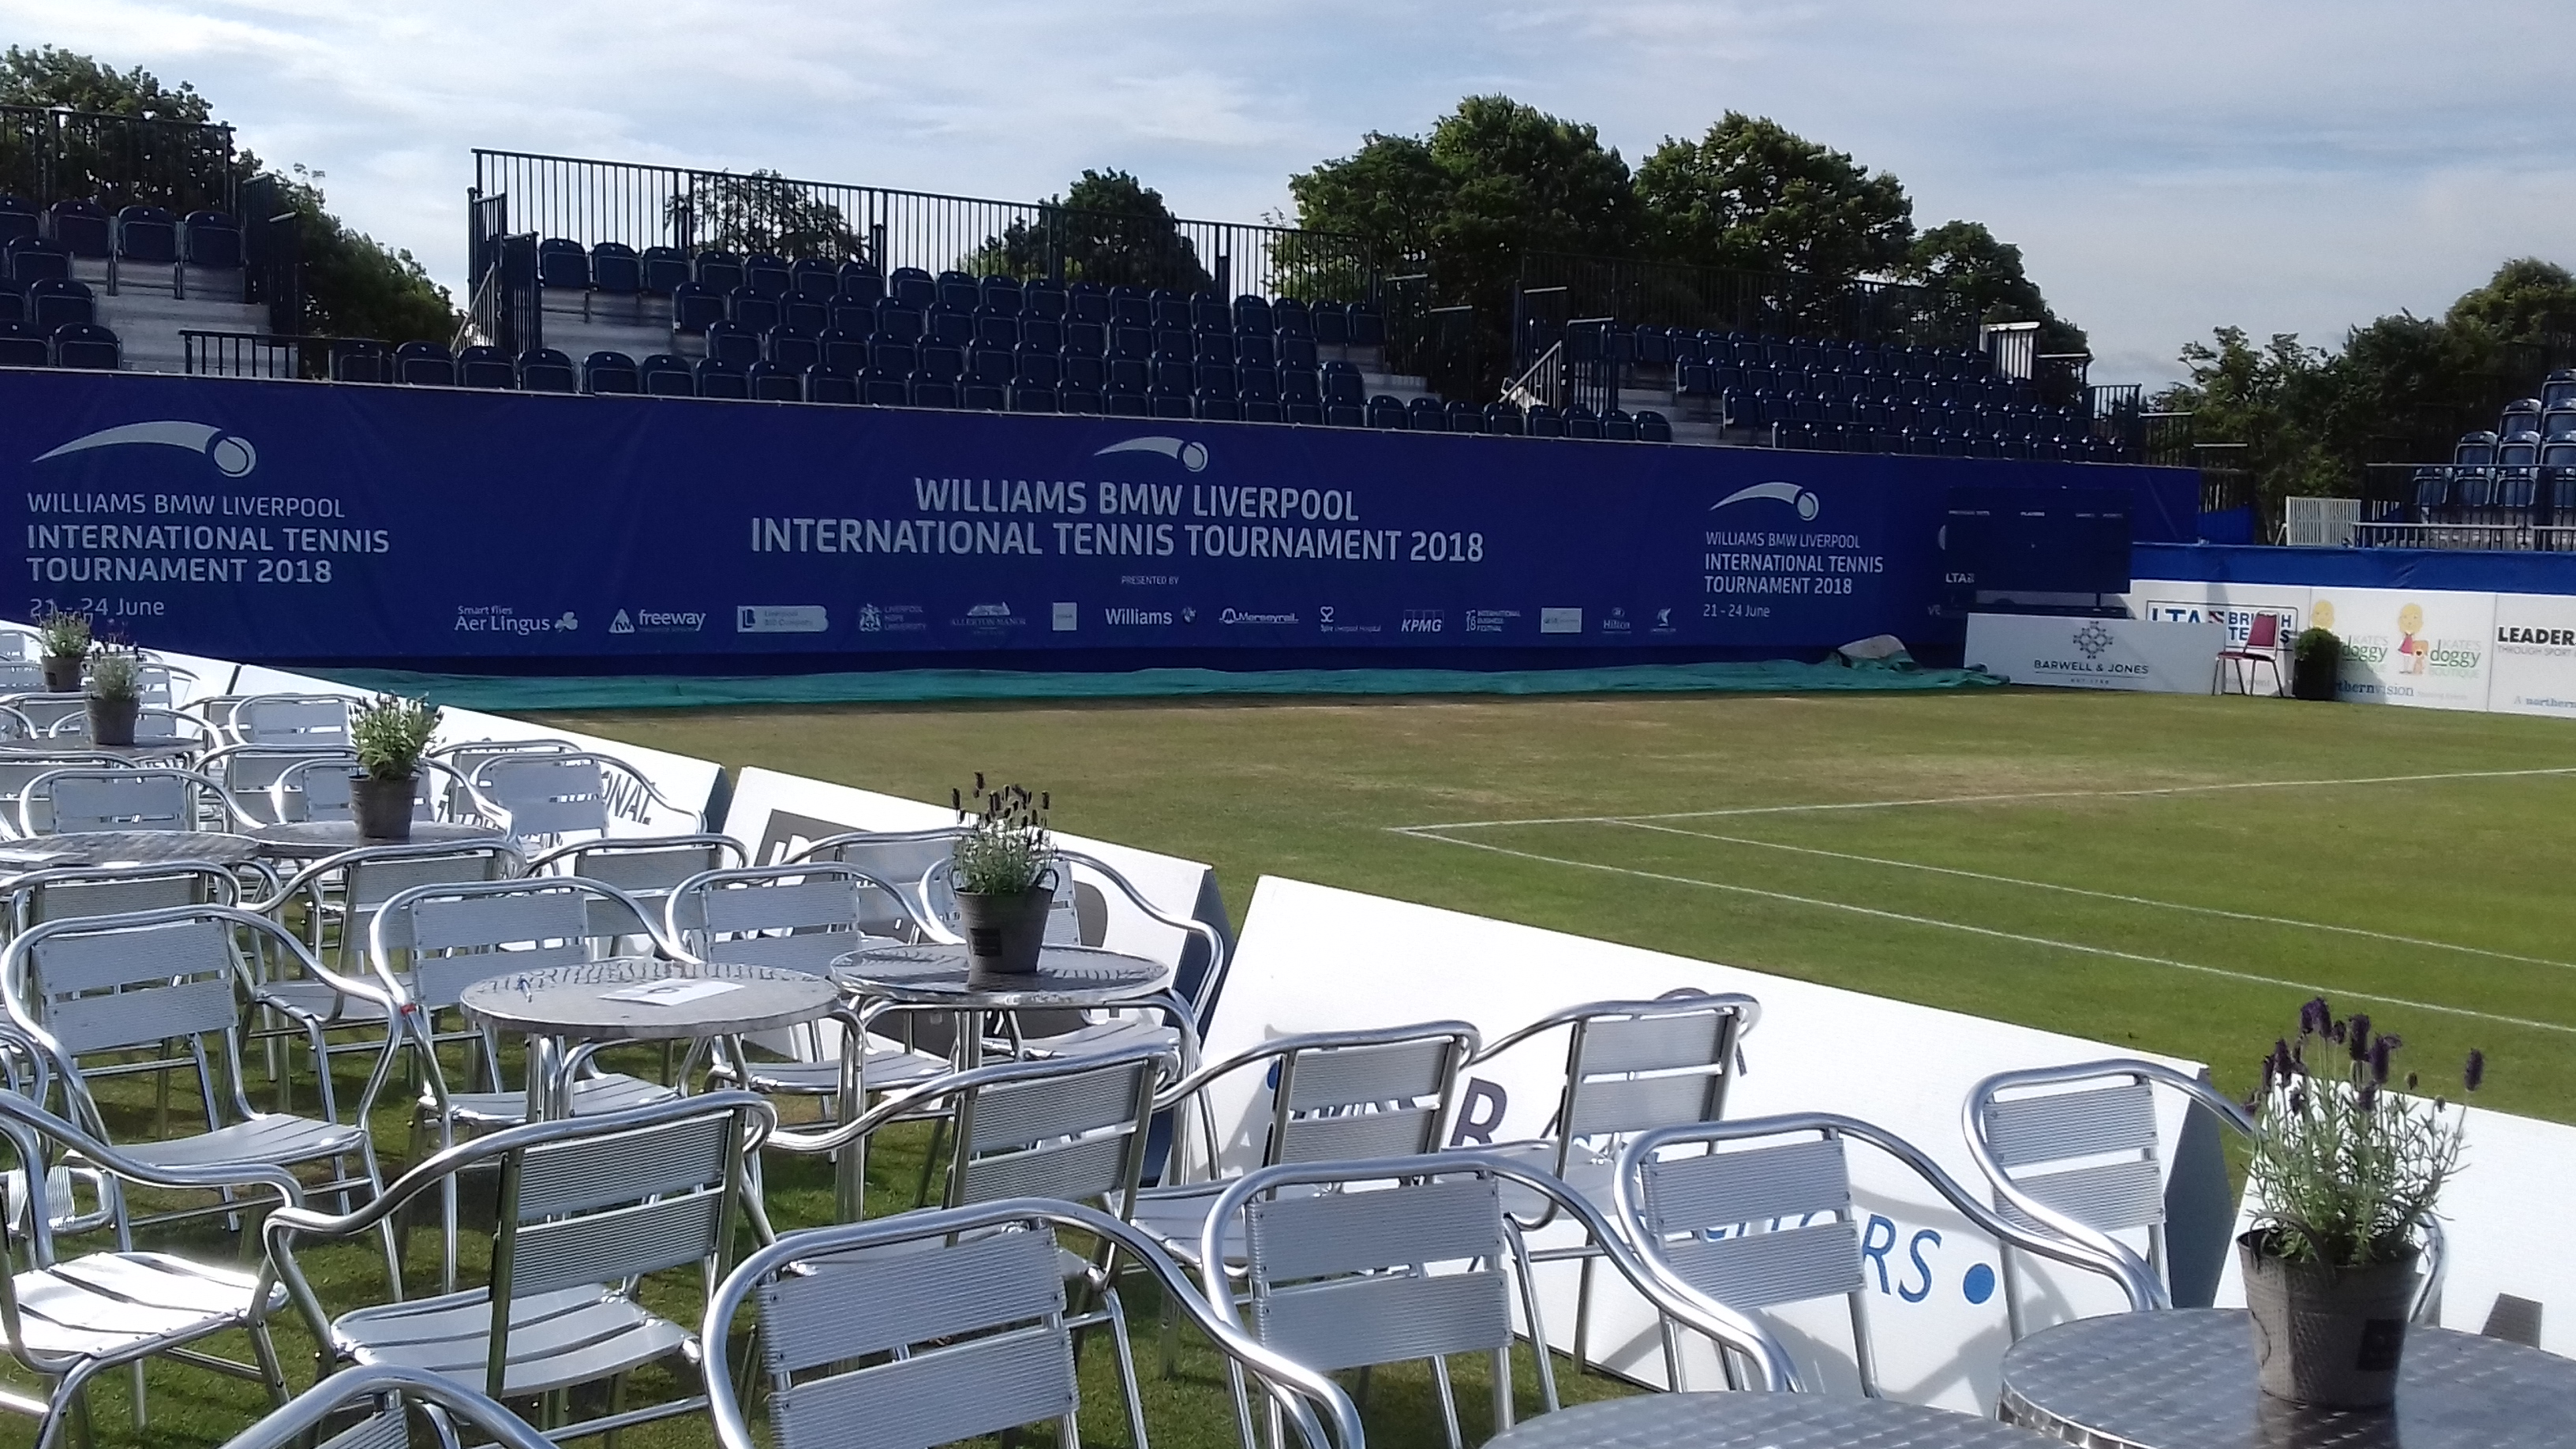 Williams BMW Liverpool International Tennis Tournament